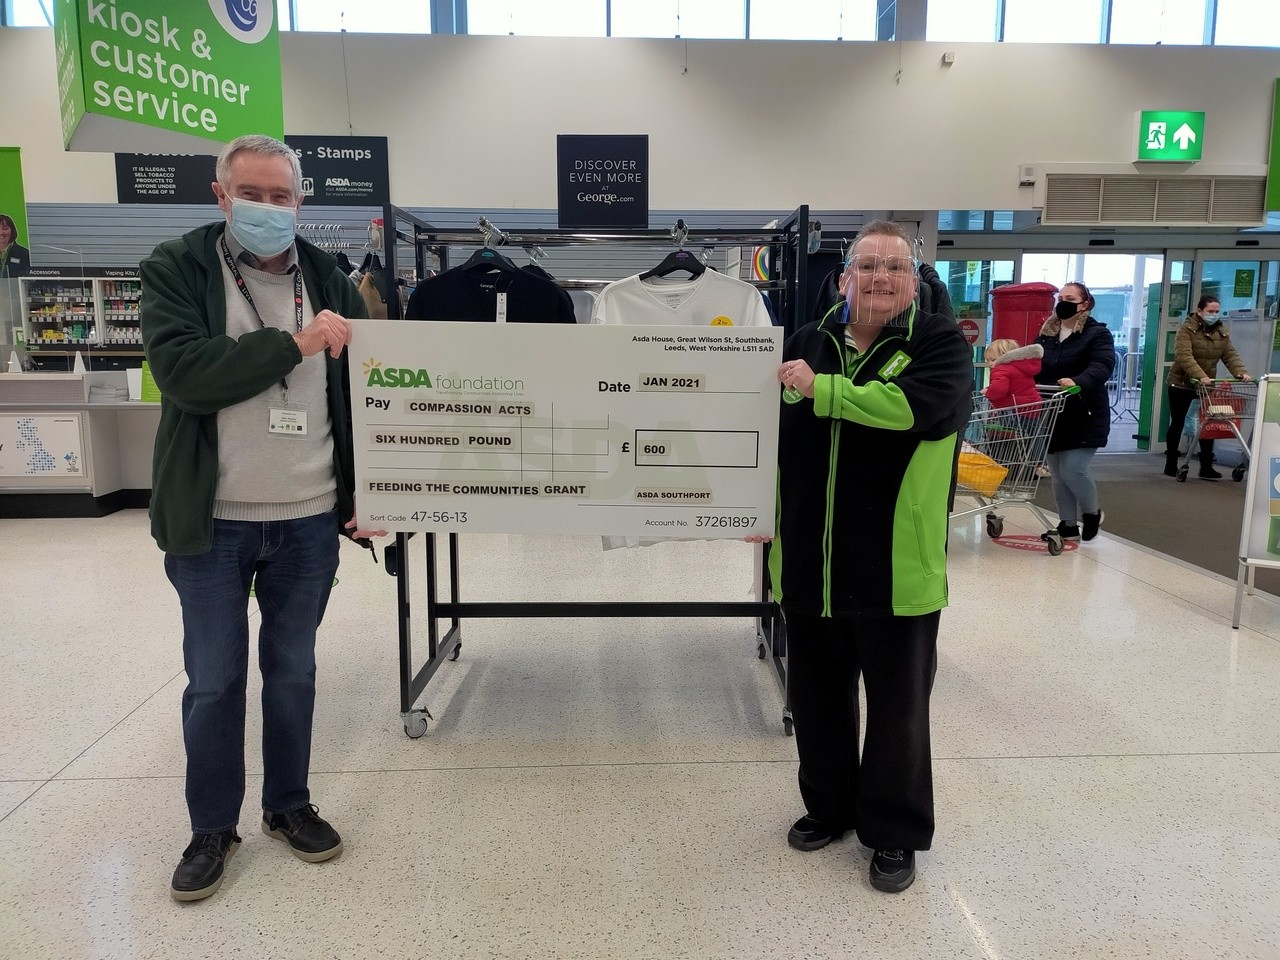 Donation for Compassion Acts | Asda Southport